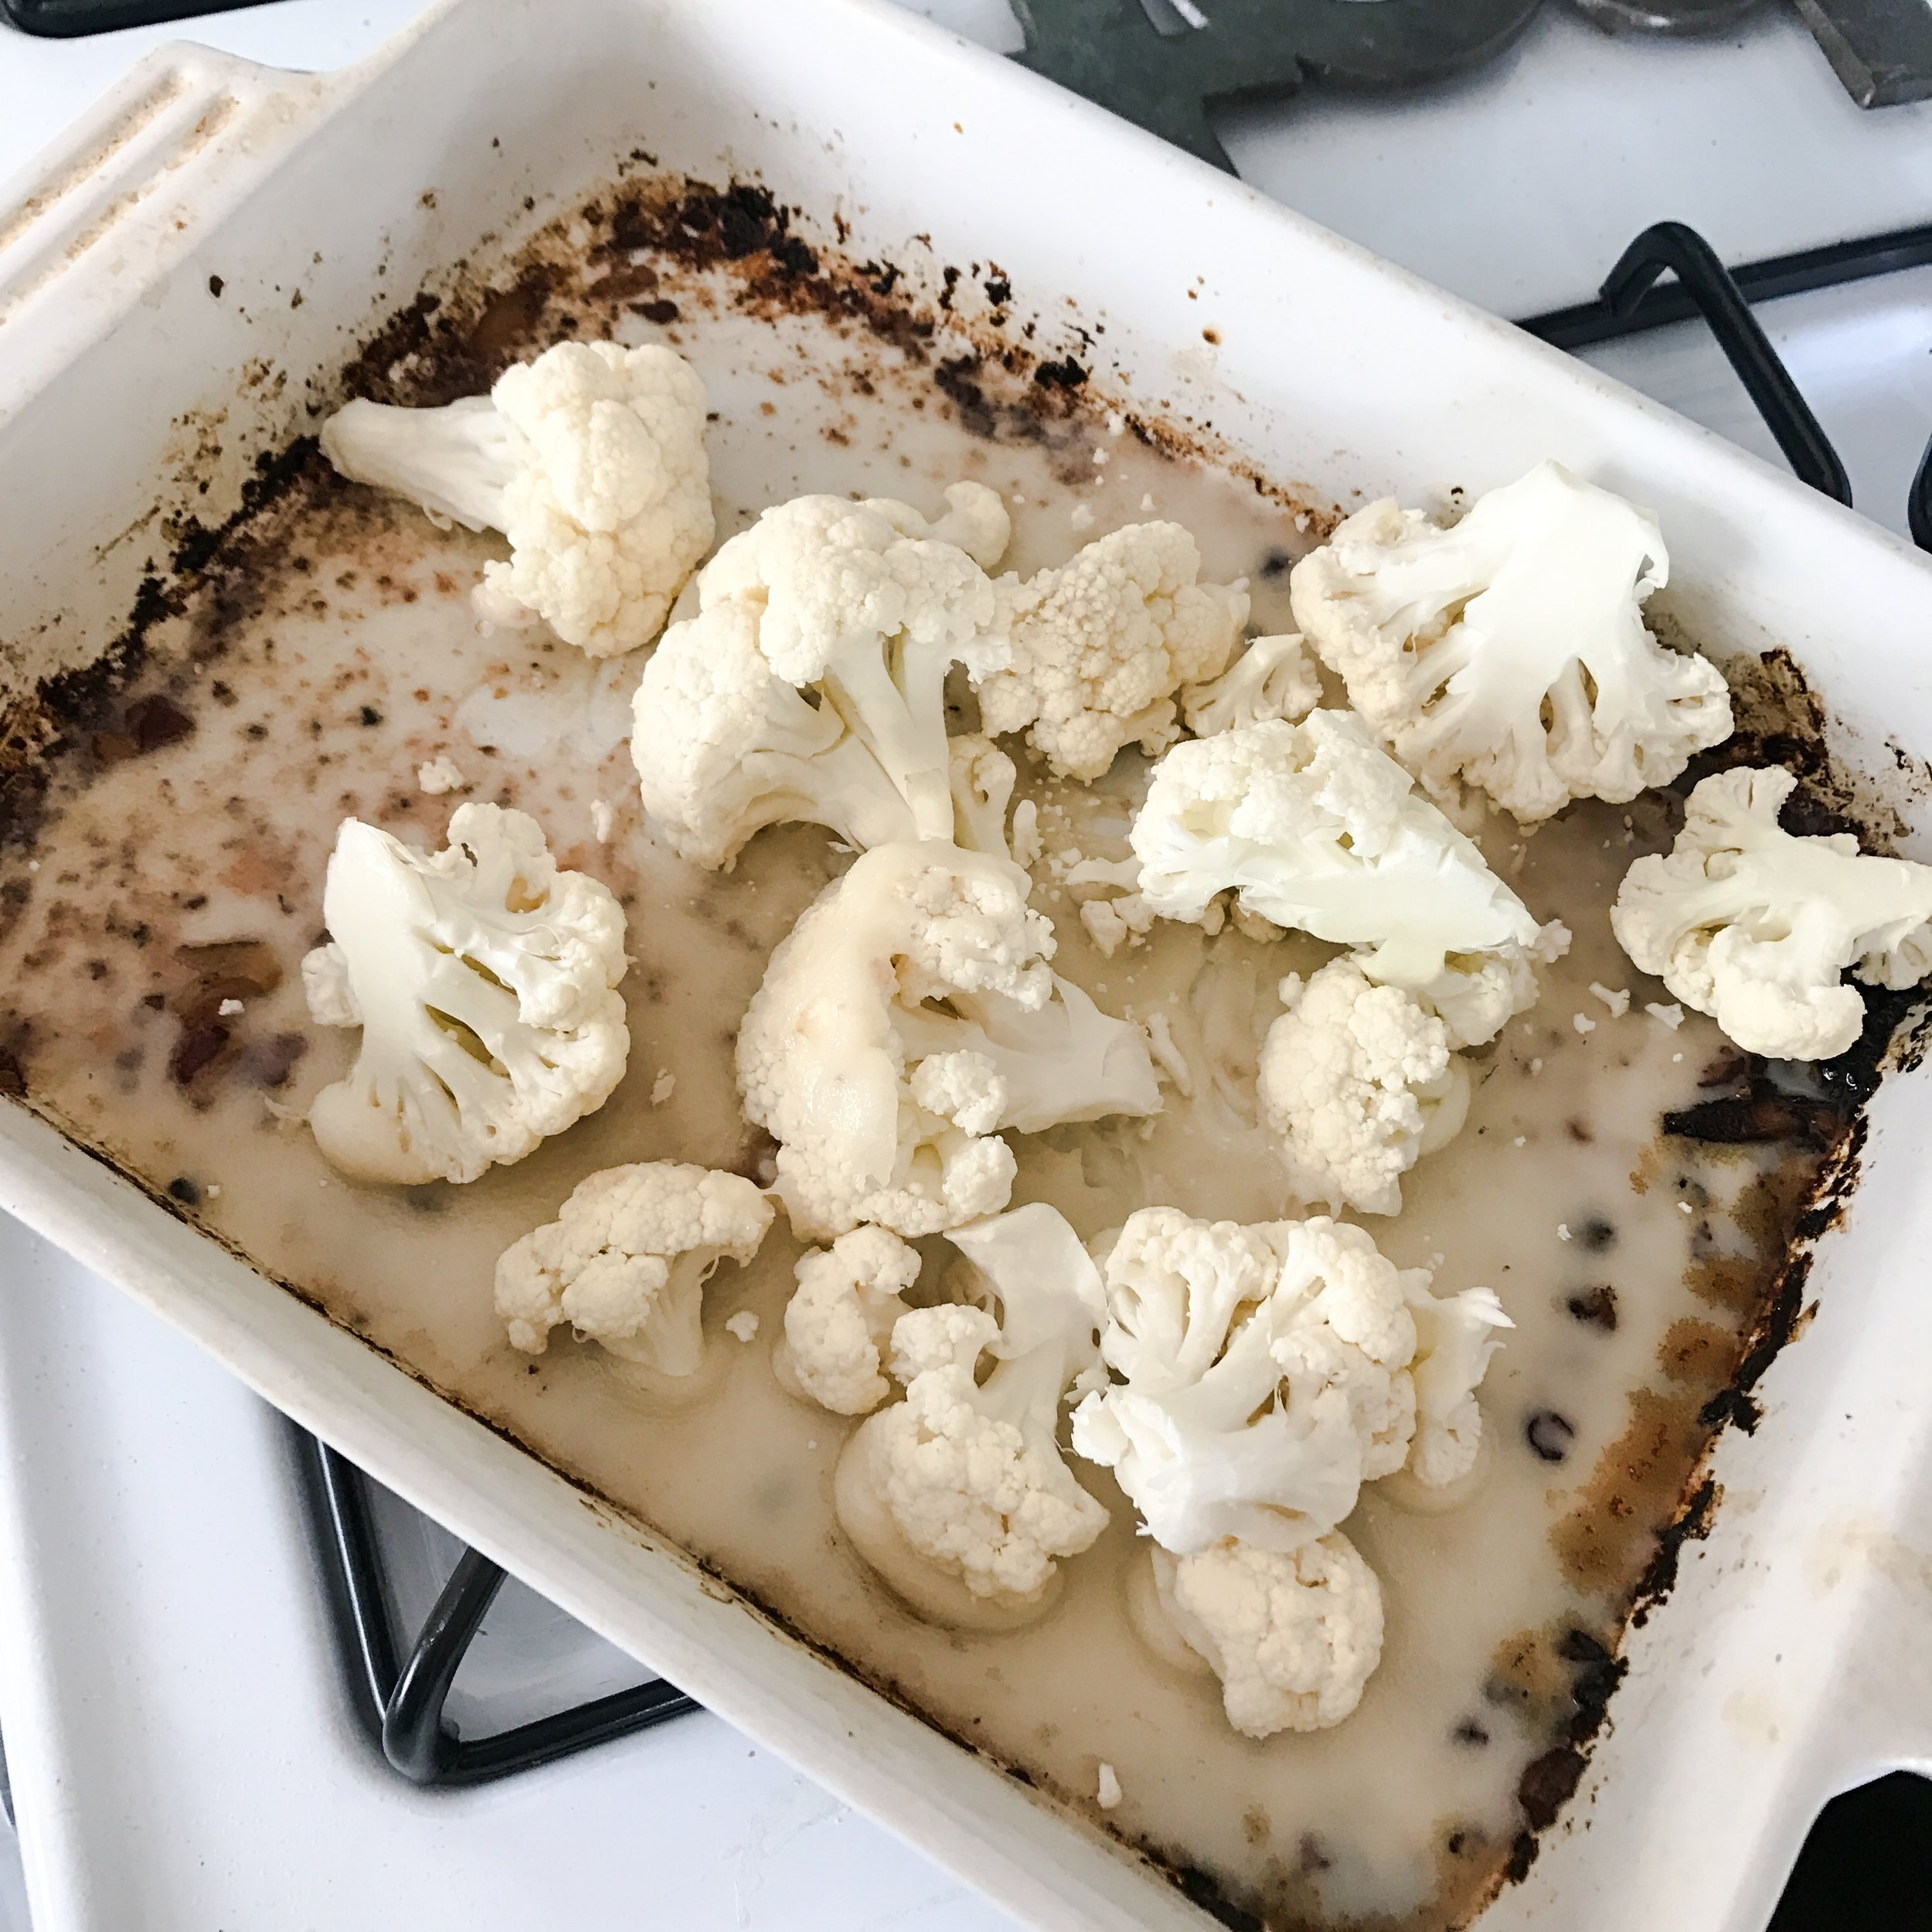 Here is the cauliflower in the hardened bacon grease. I just pop it in the oven just like that- no seasoning or anything at this point. I let it bake for about 15 minutes and then pull it out to stir and season.